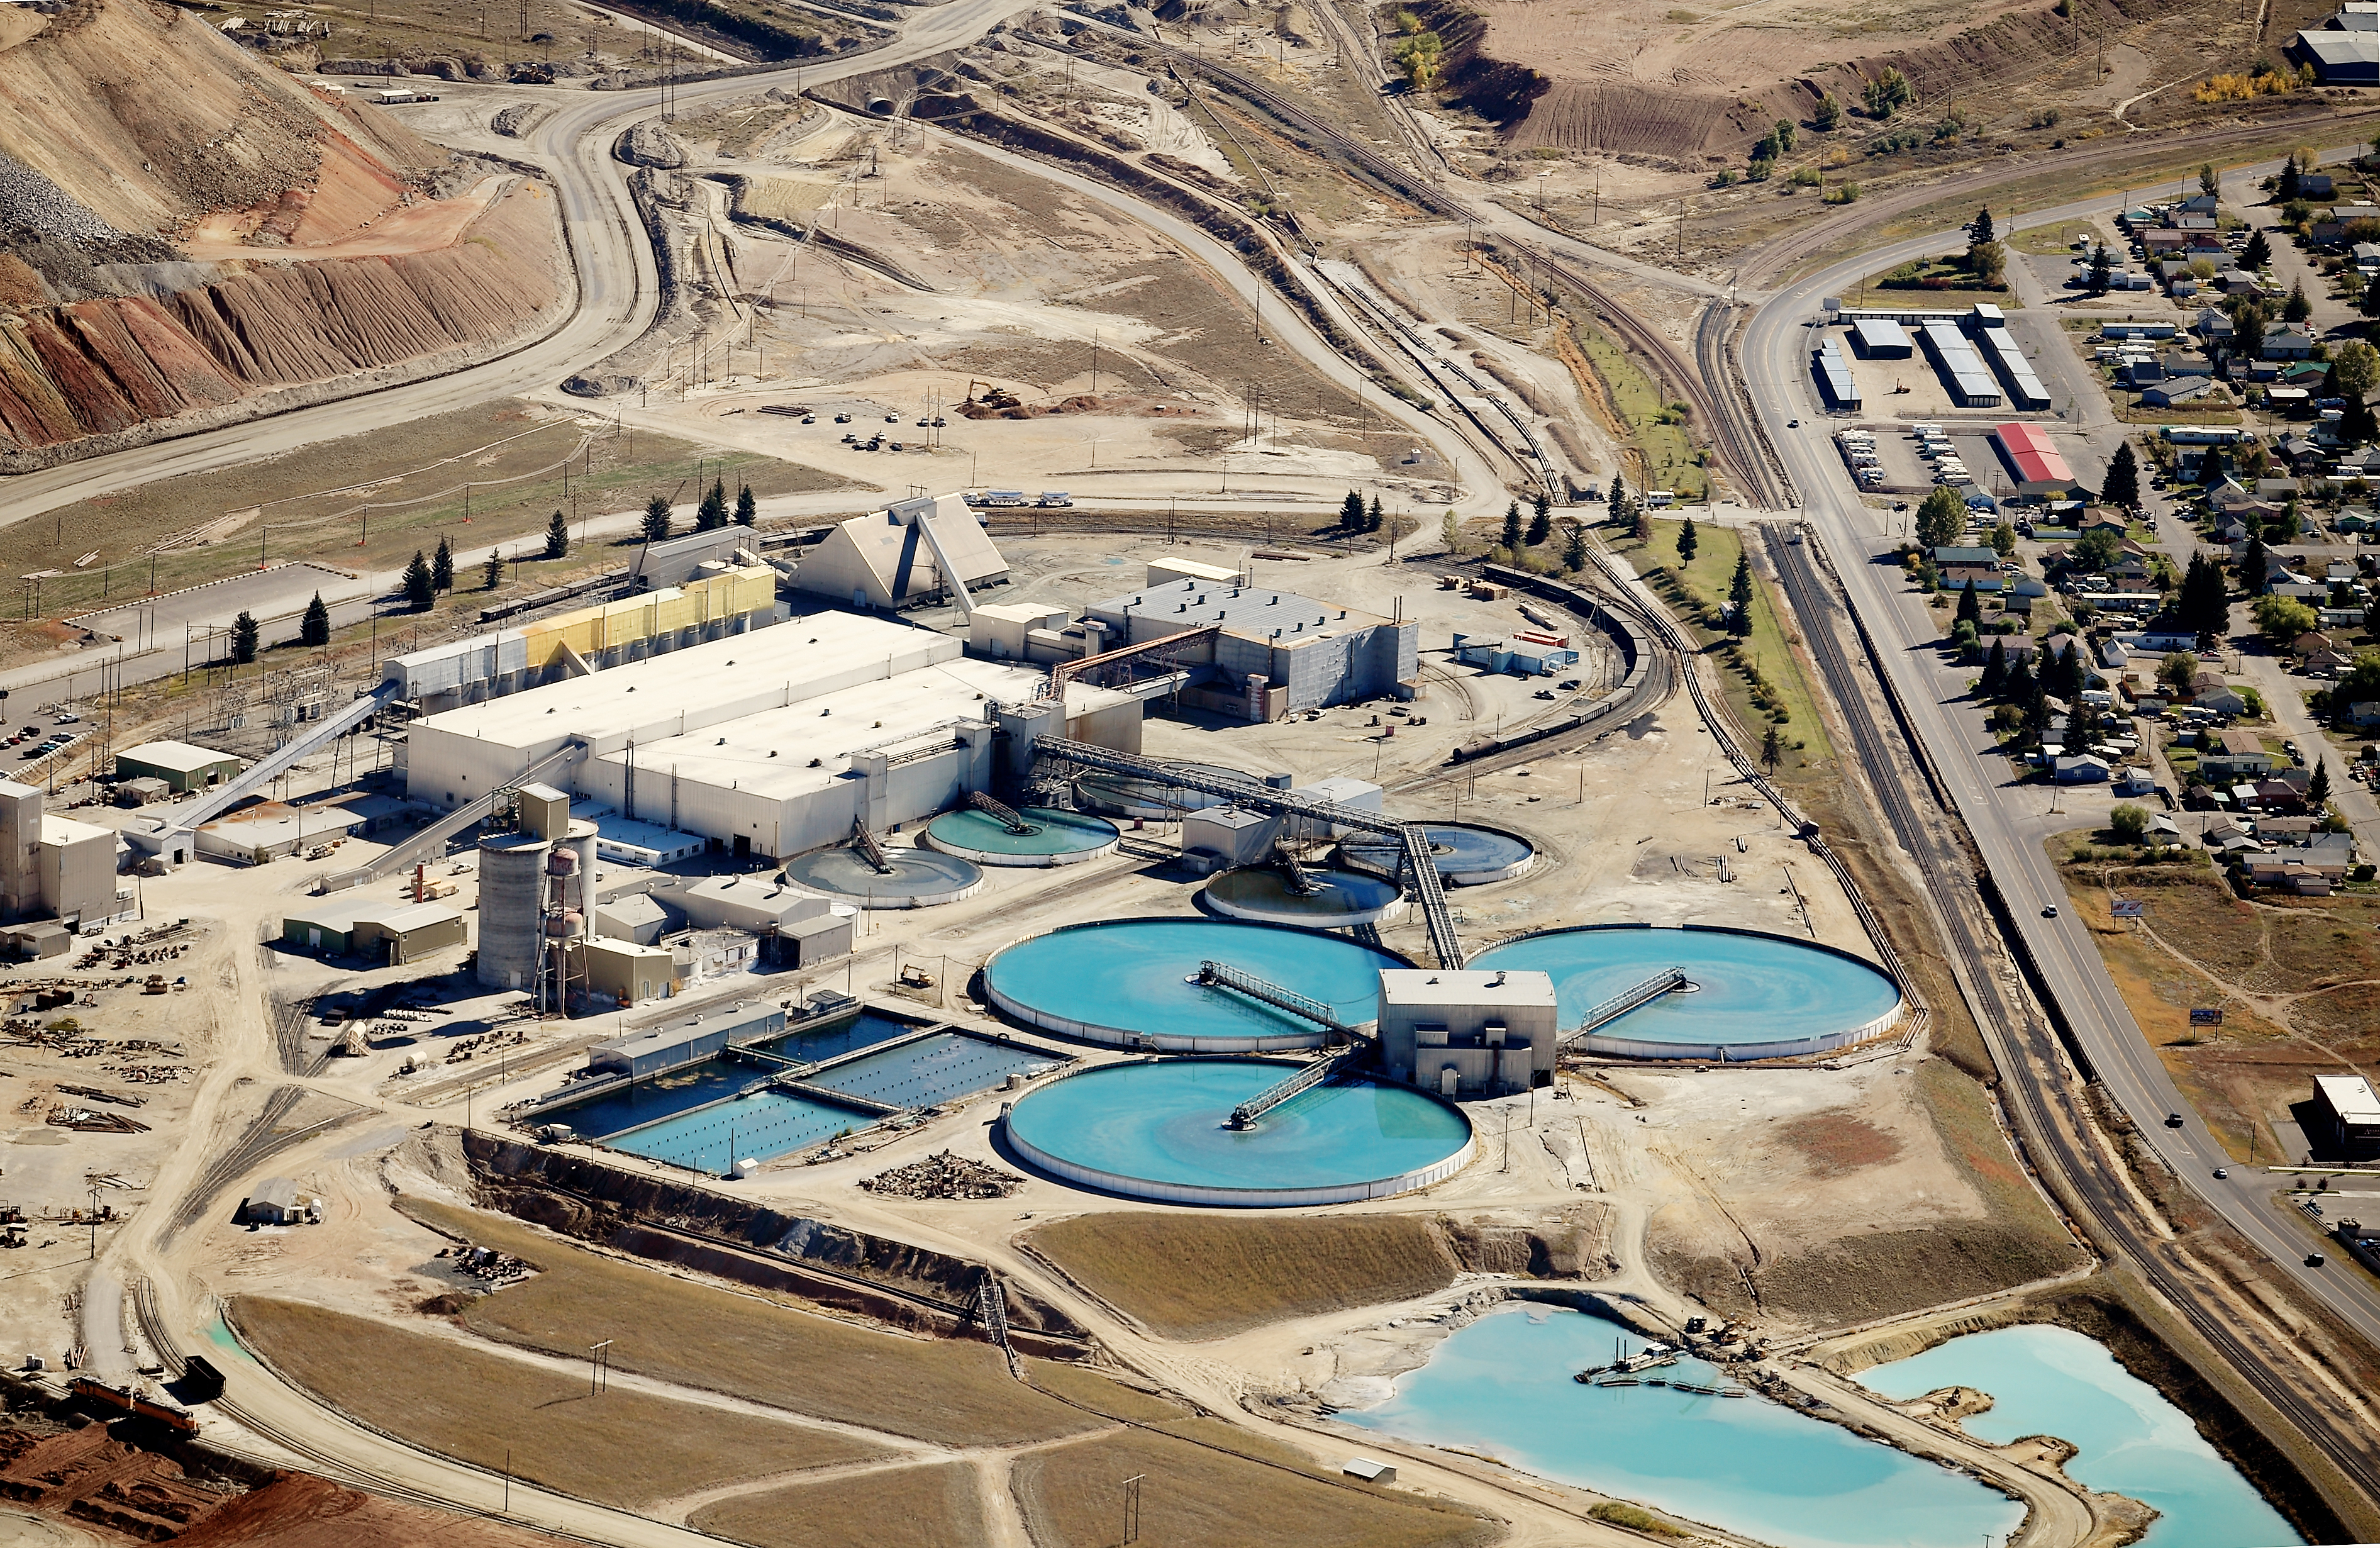 Xylem's Mining Wastewater Treatments for Reuse